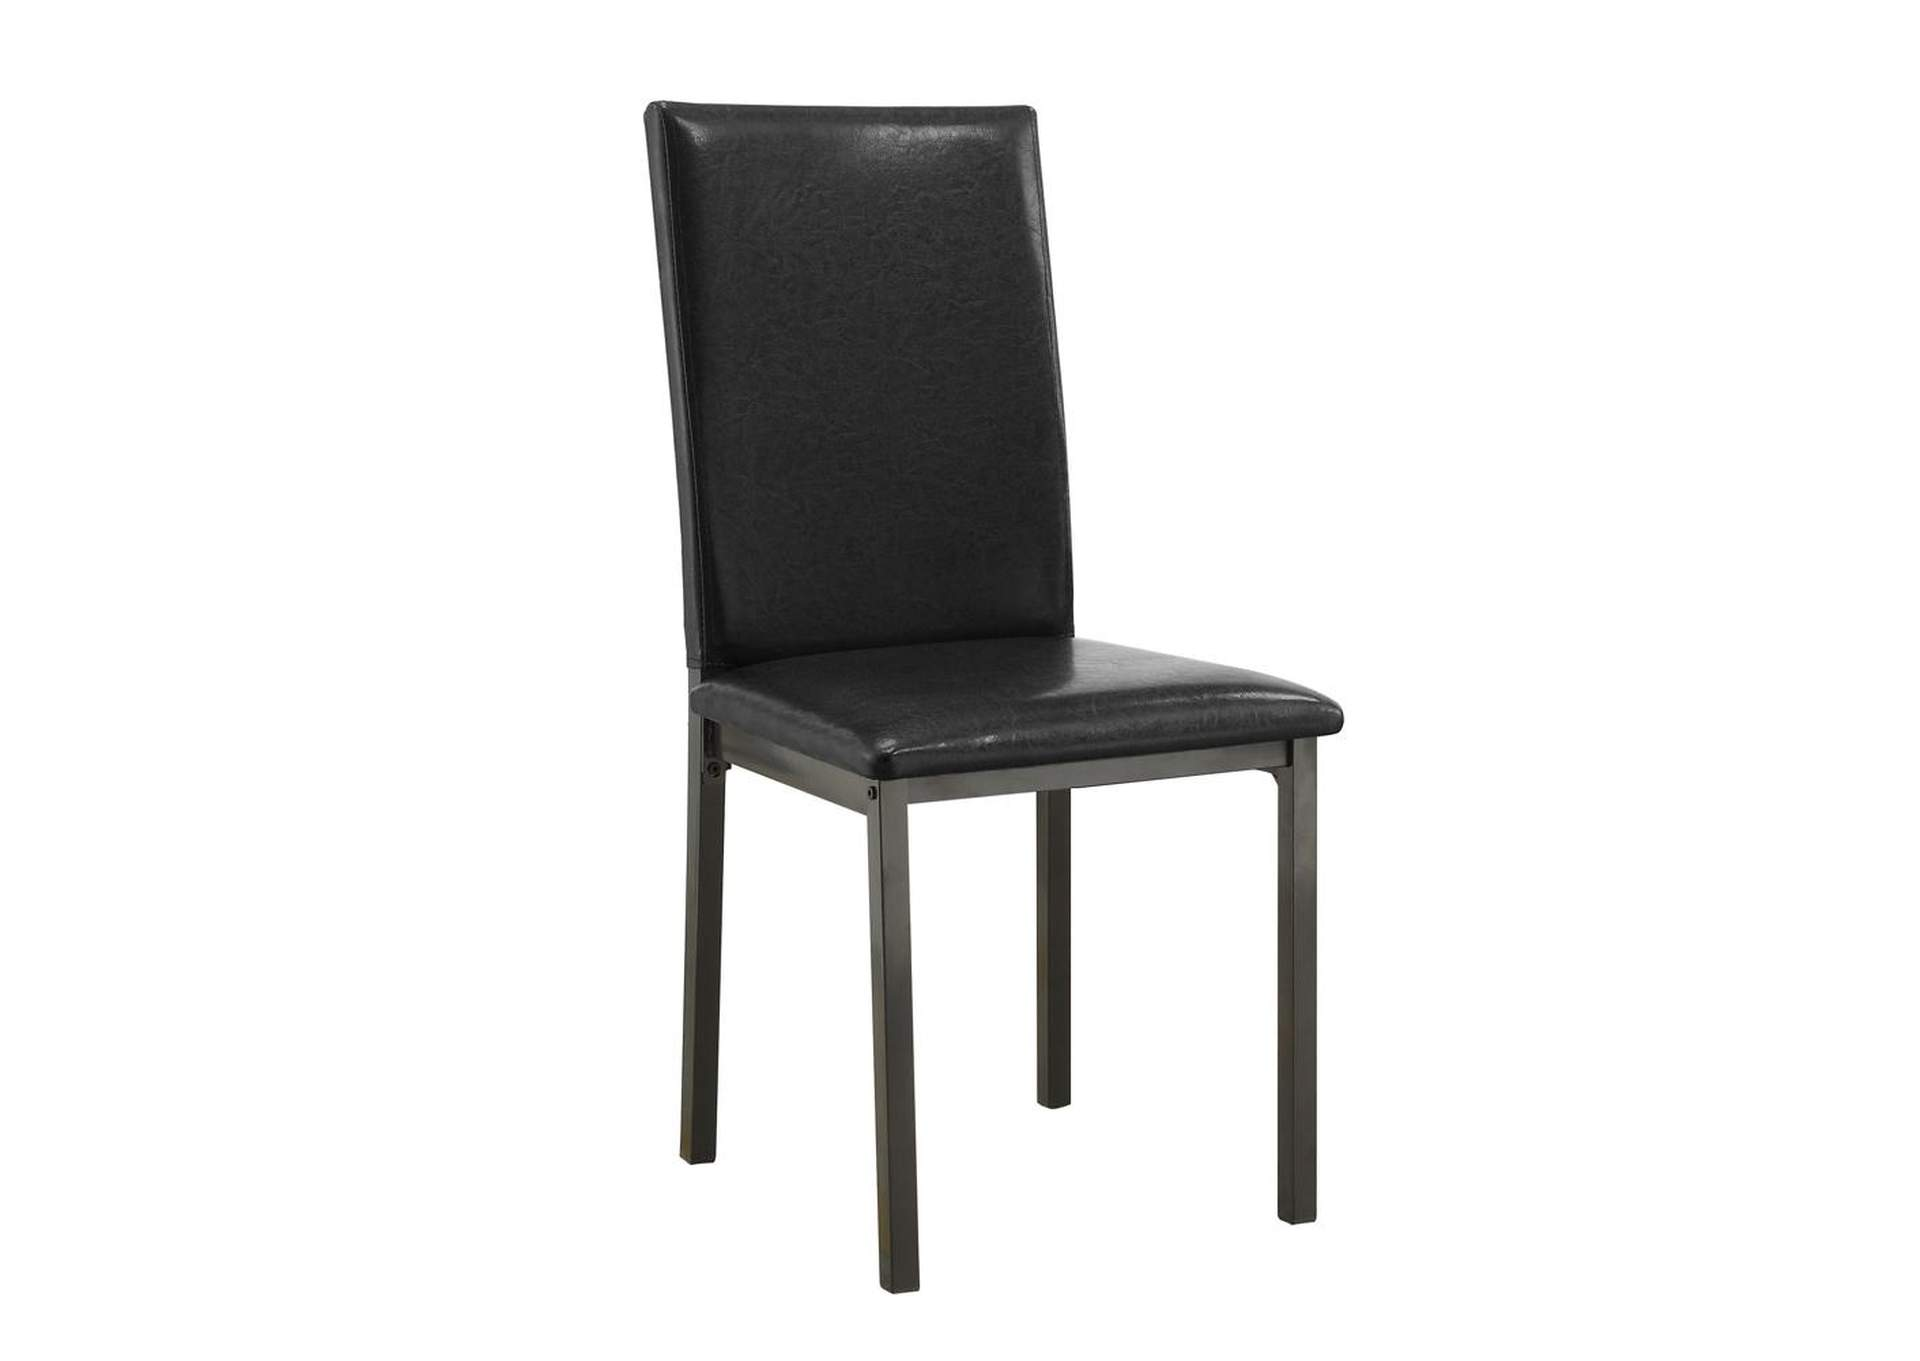 Mine Shaft Garza Black Upholstered Side Dining Chair,Coaster Furniture